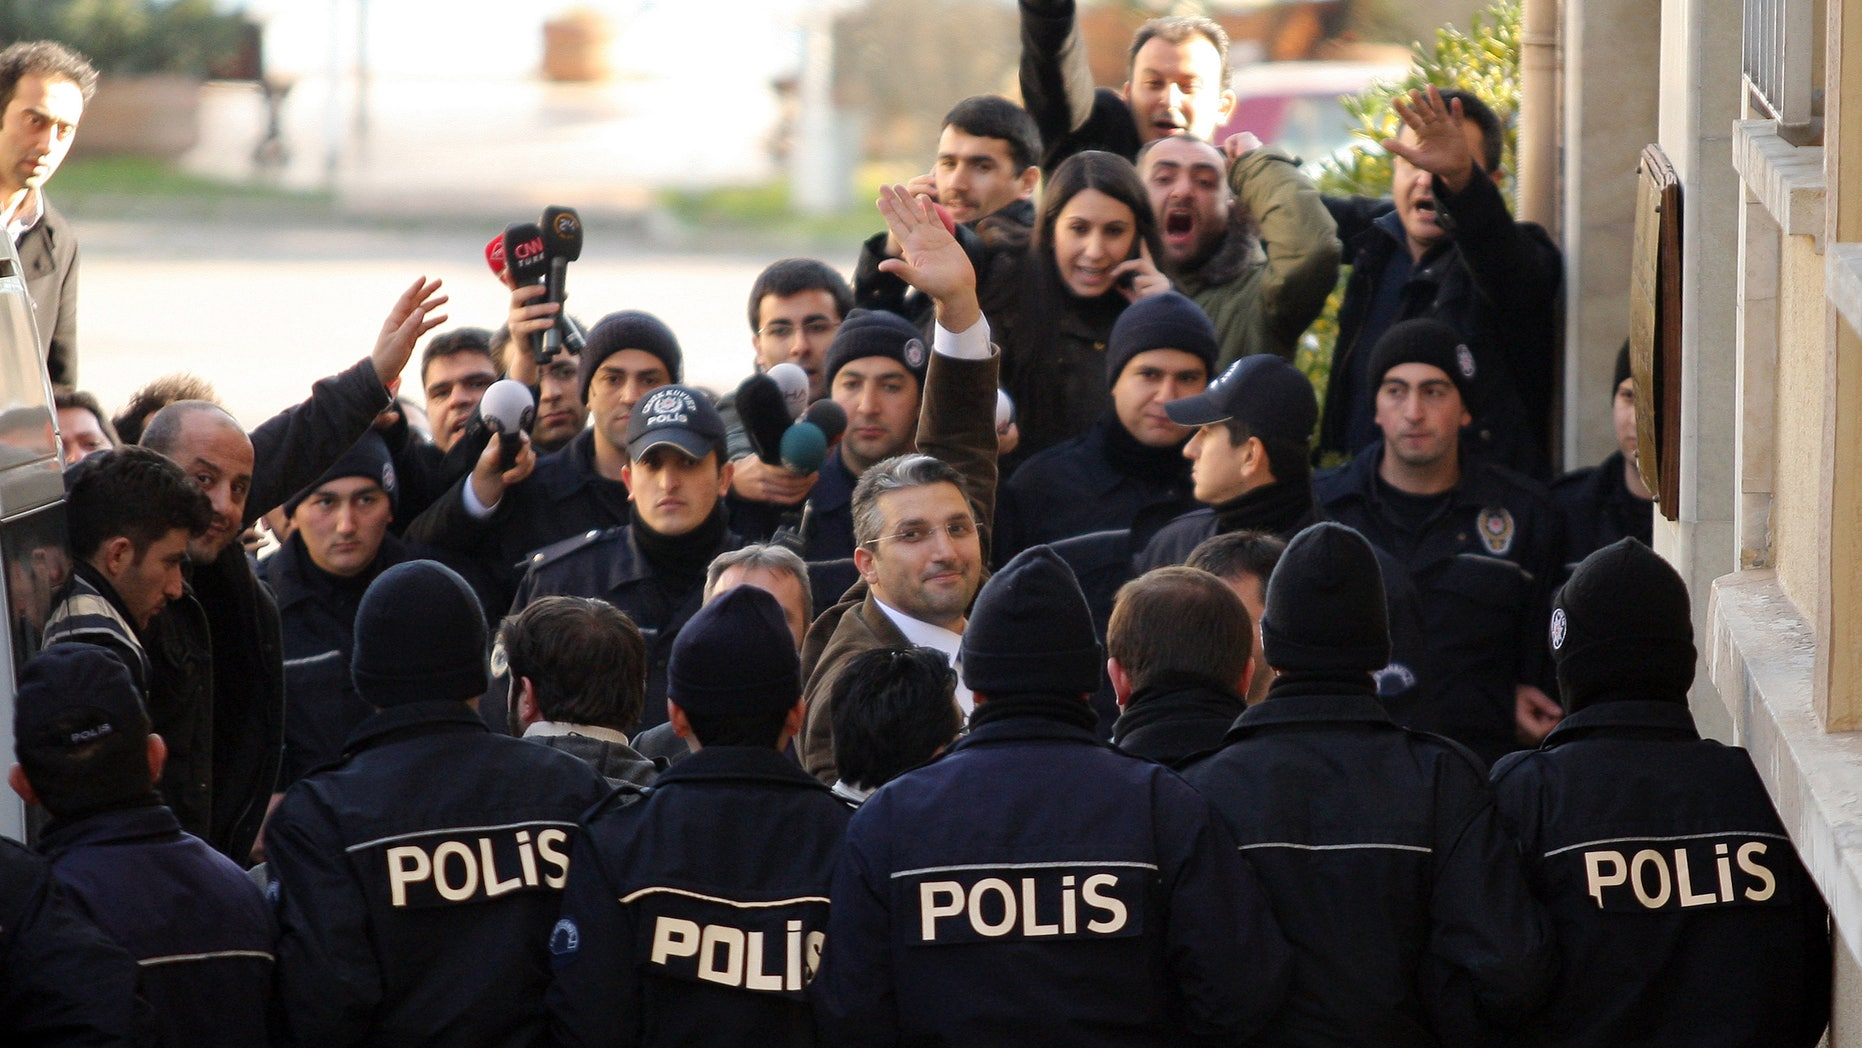 Ahmet Sik (facing camera, third from left) outside an Istanbul courthouse in 2011.